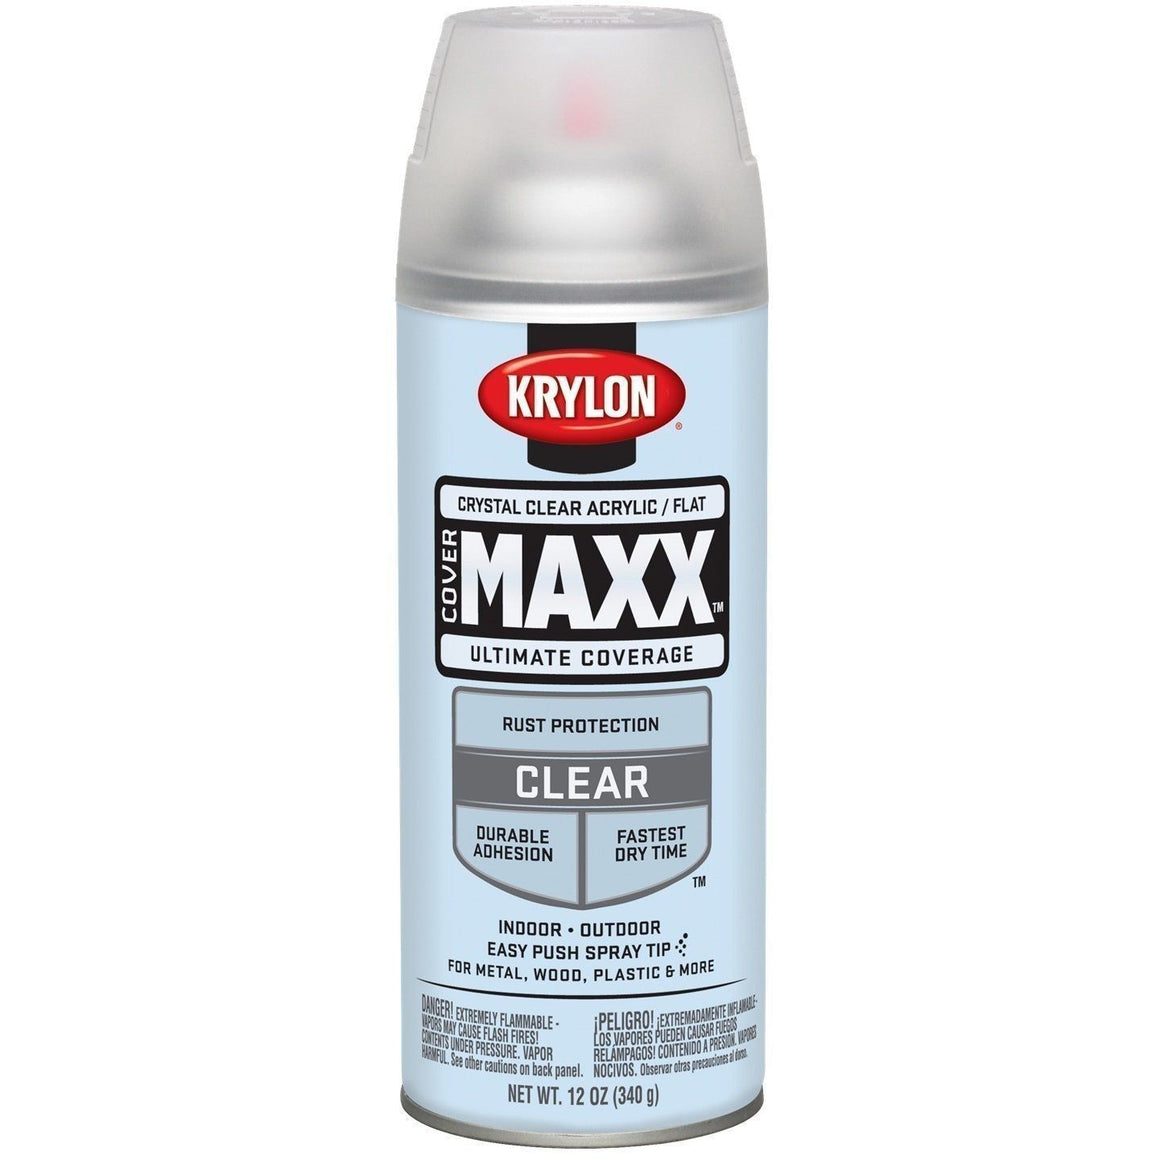 Krylon COVERMAXX Spray Paint, Flat Crystal Clear Acrylic, 11oz K09148007